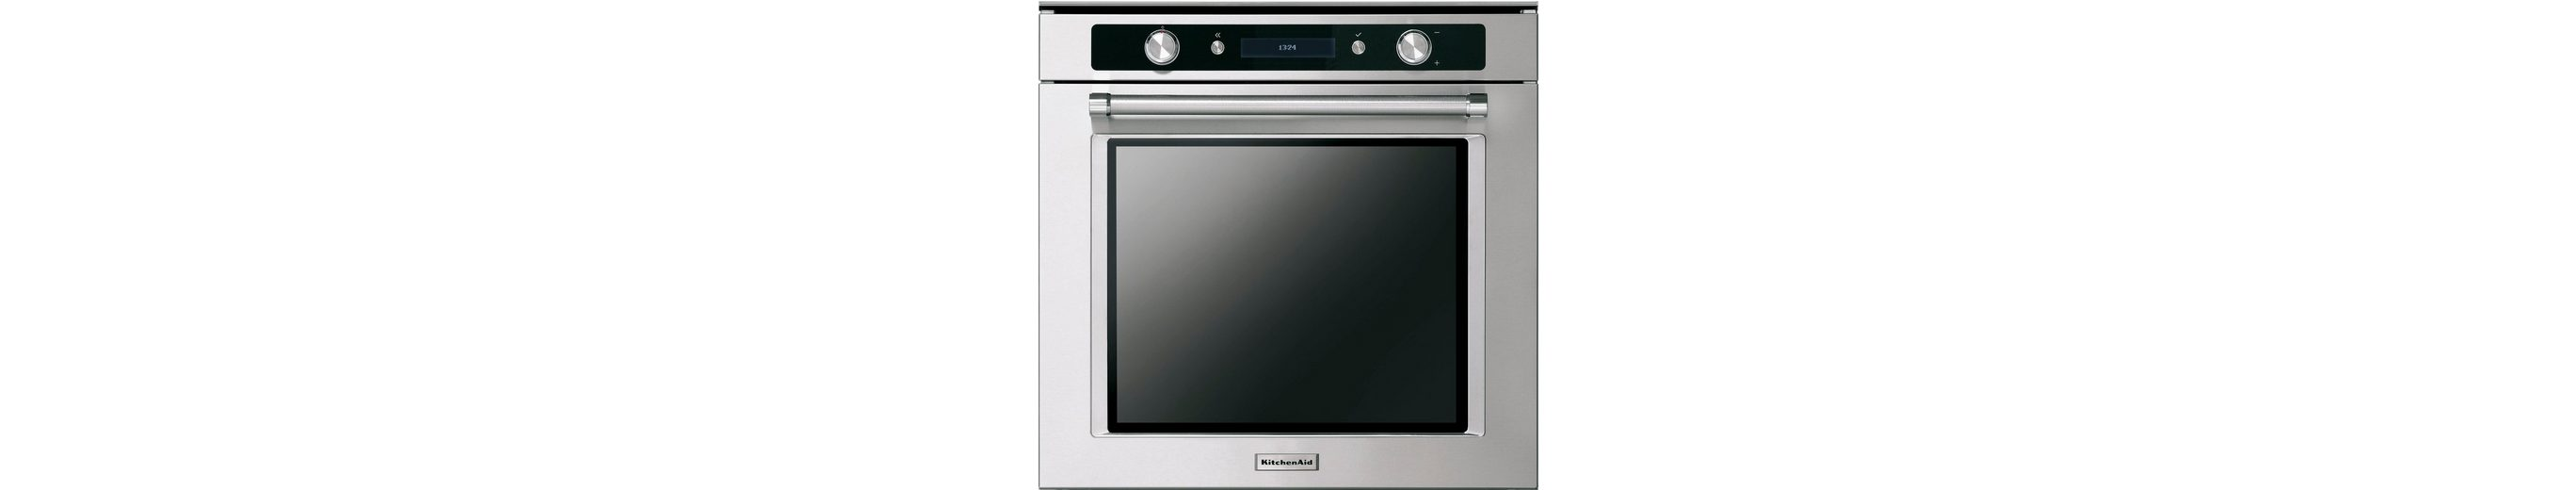 KitchenAid® Backofen KOHSS 60601, Energieklasse A+